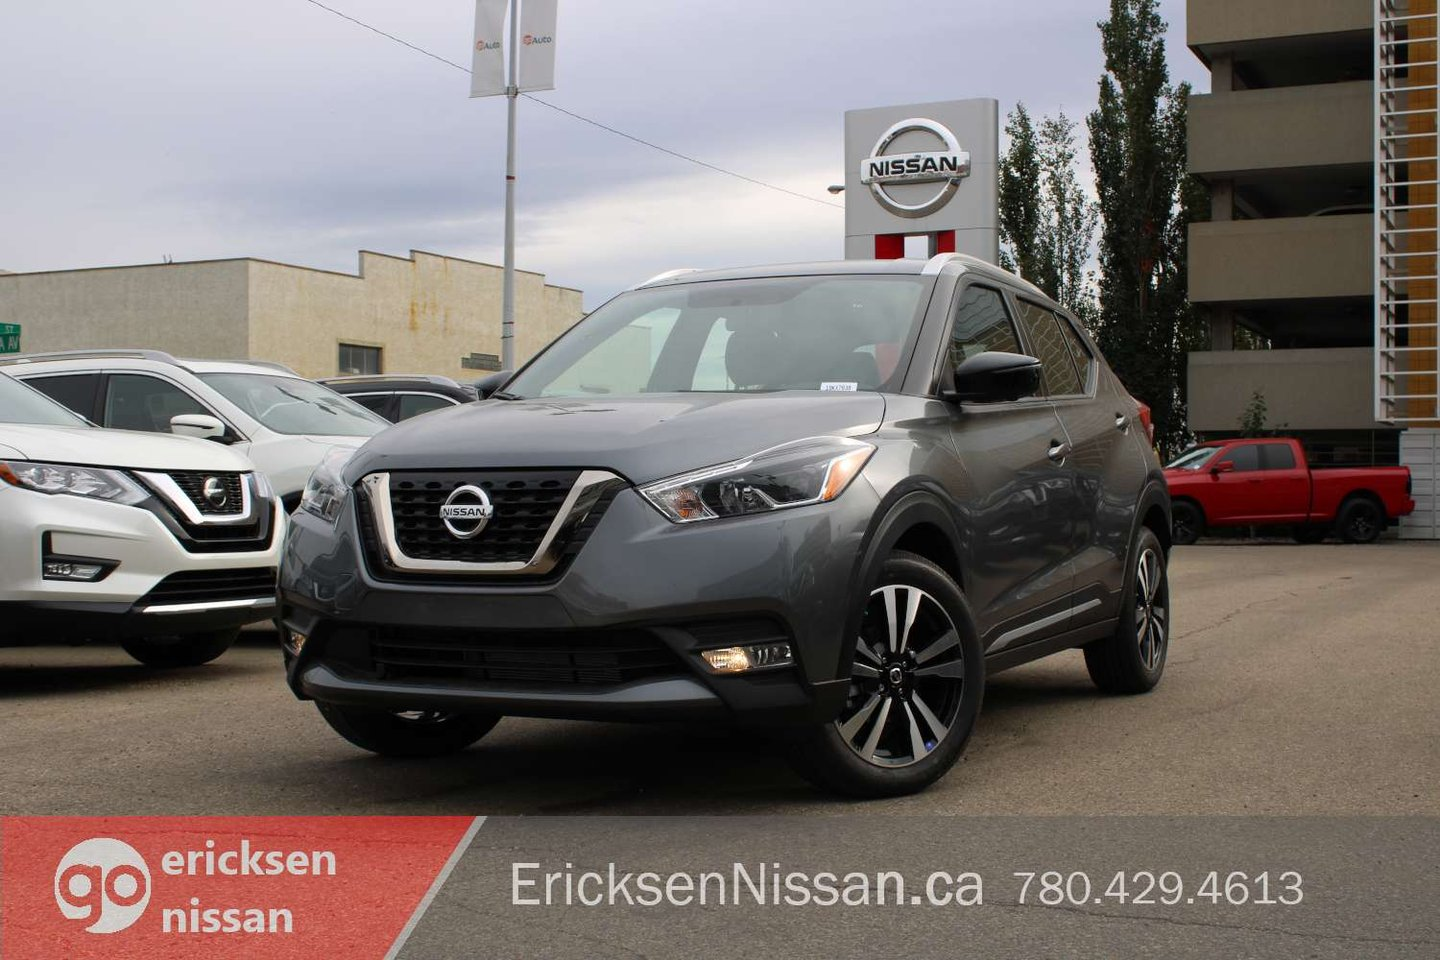 2019 Nissan Kicks SR for sale in Edmonton, Alberta